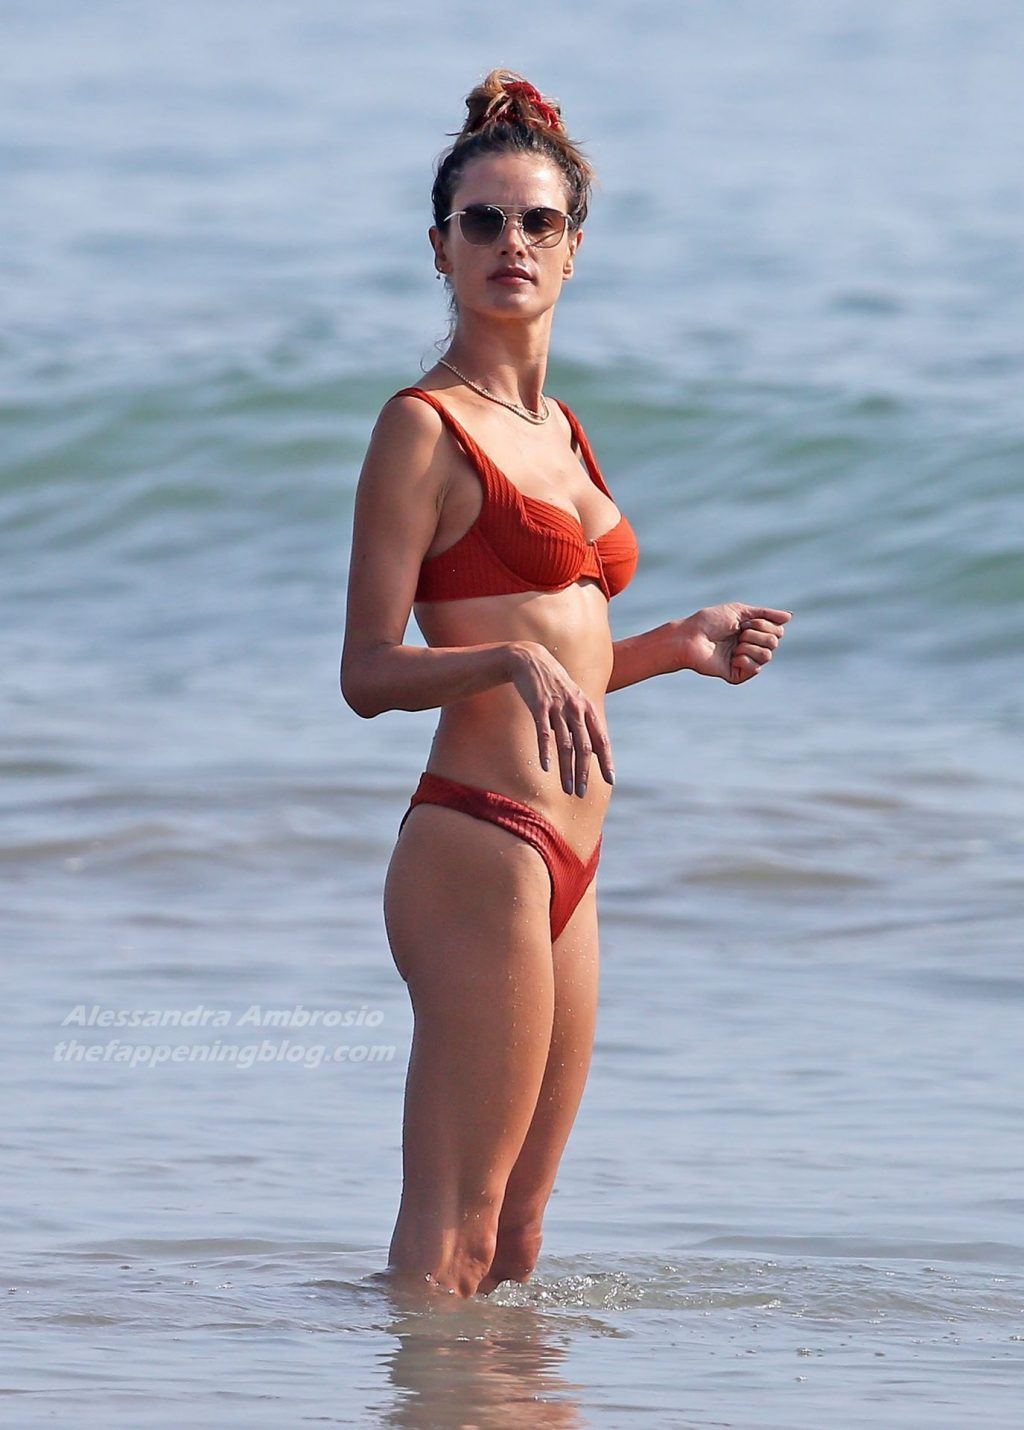 Alessandra Ambrosio Plays Beach Volleyball with Friends (34 Photos)